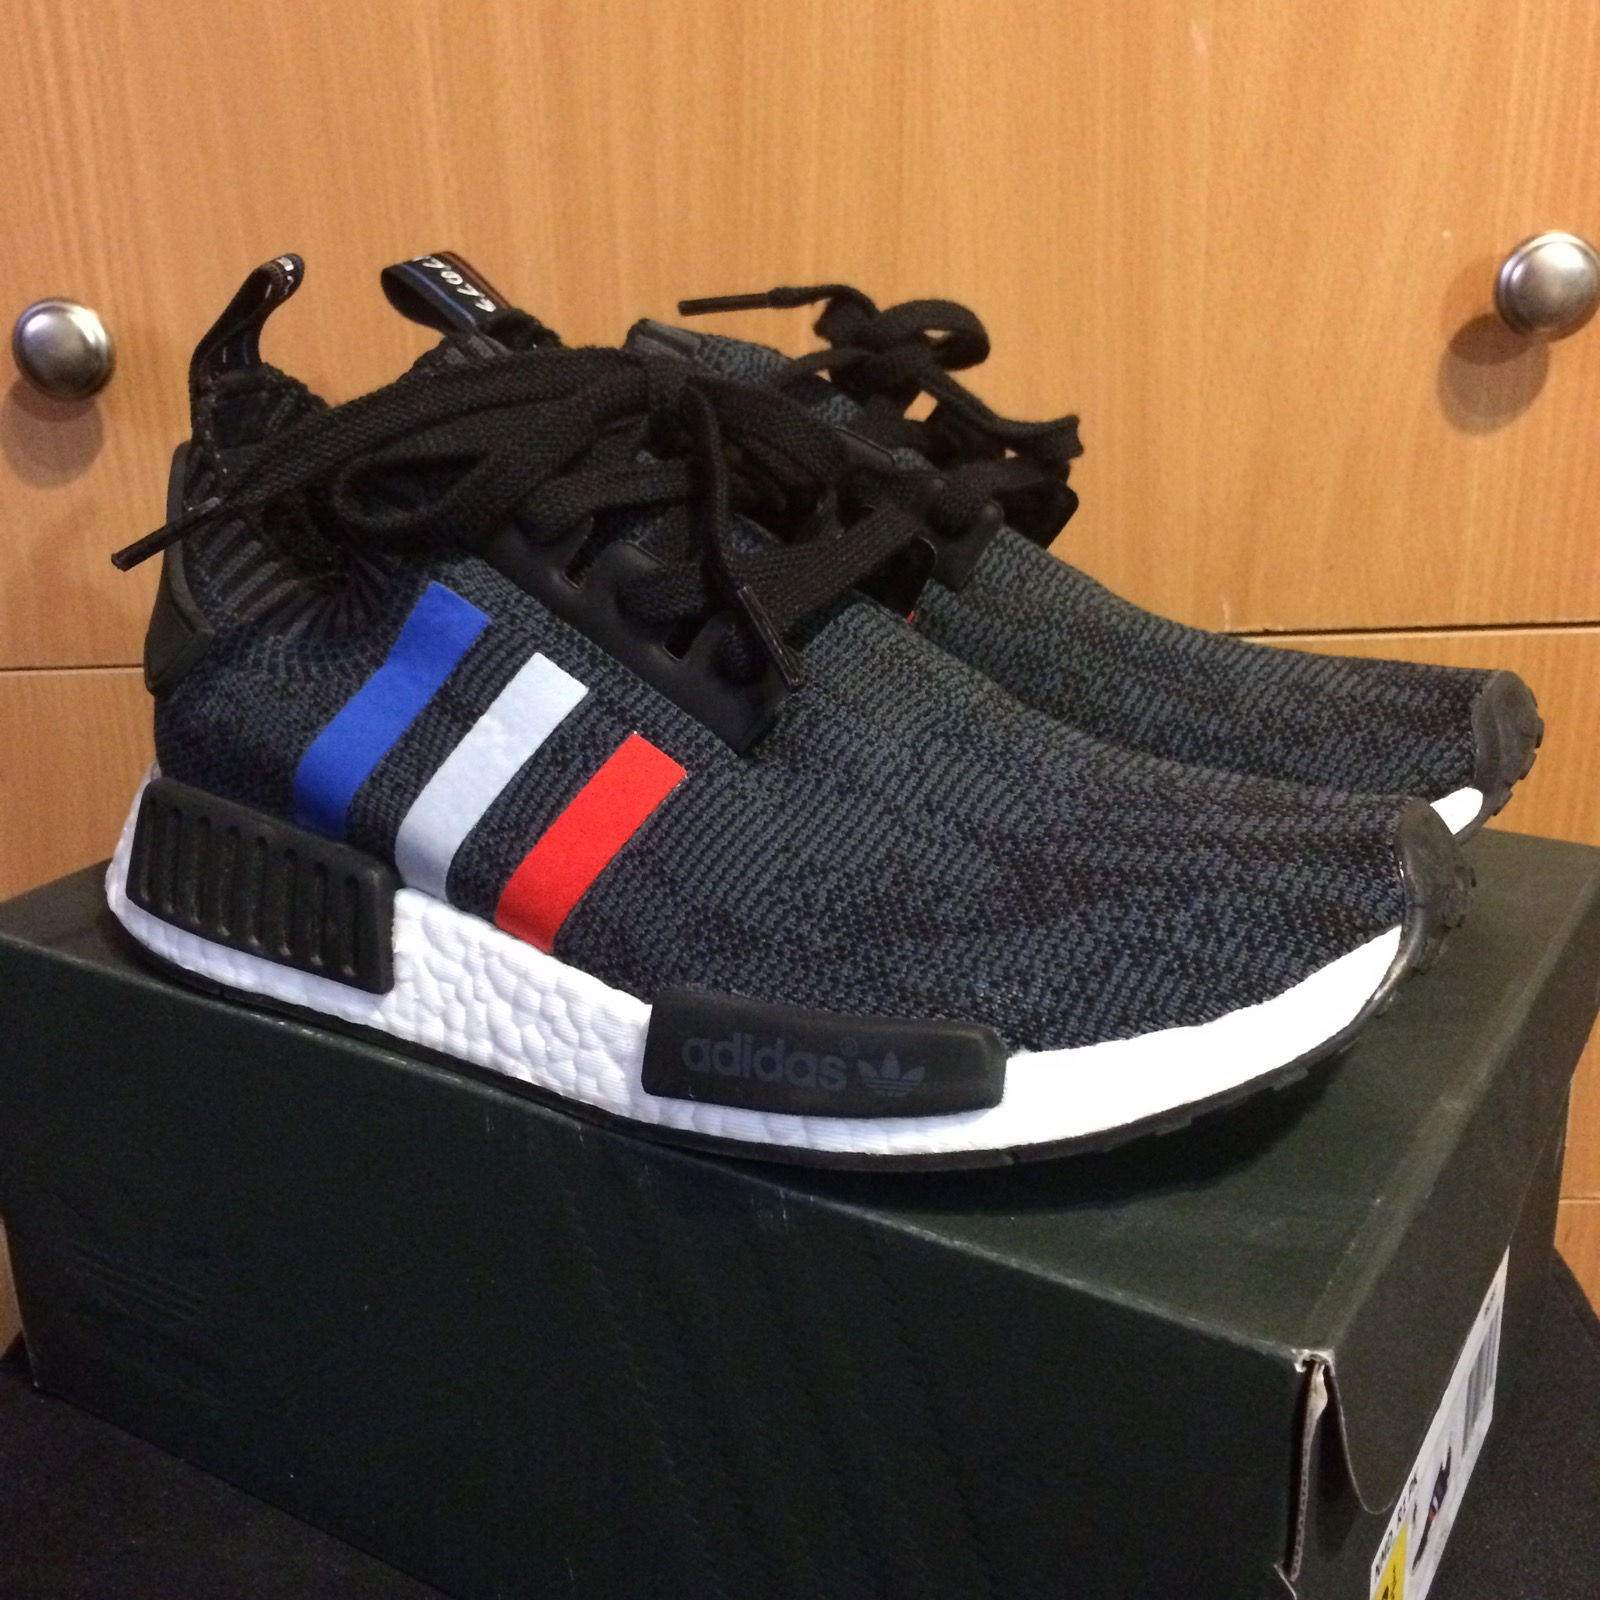 Adidas Final Drop Adidas Nmd Tri Color Stripes Black Size 8 5